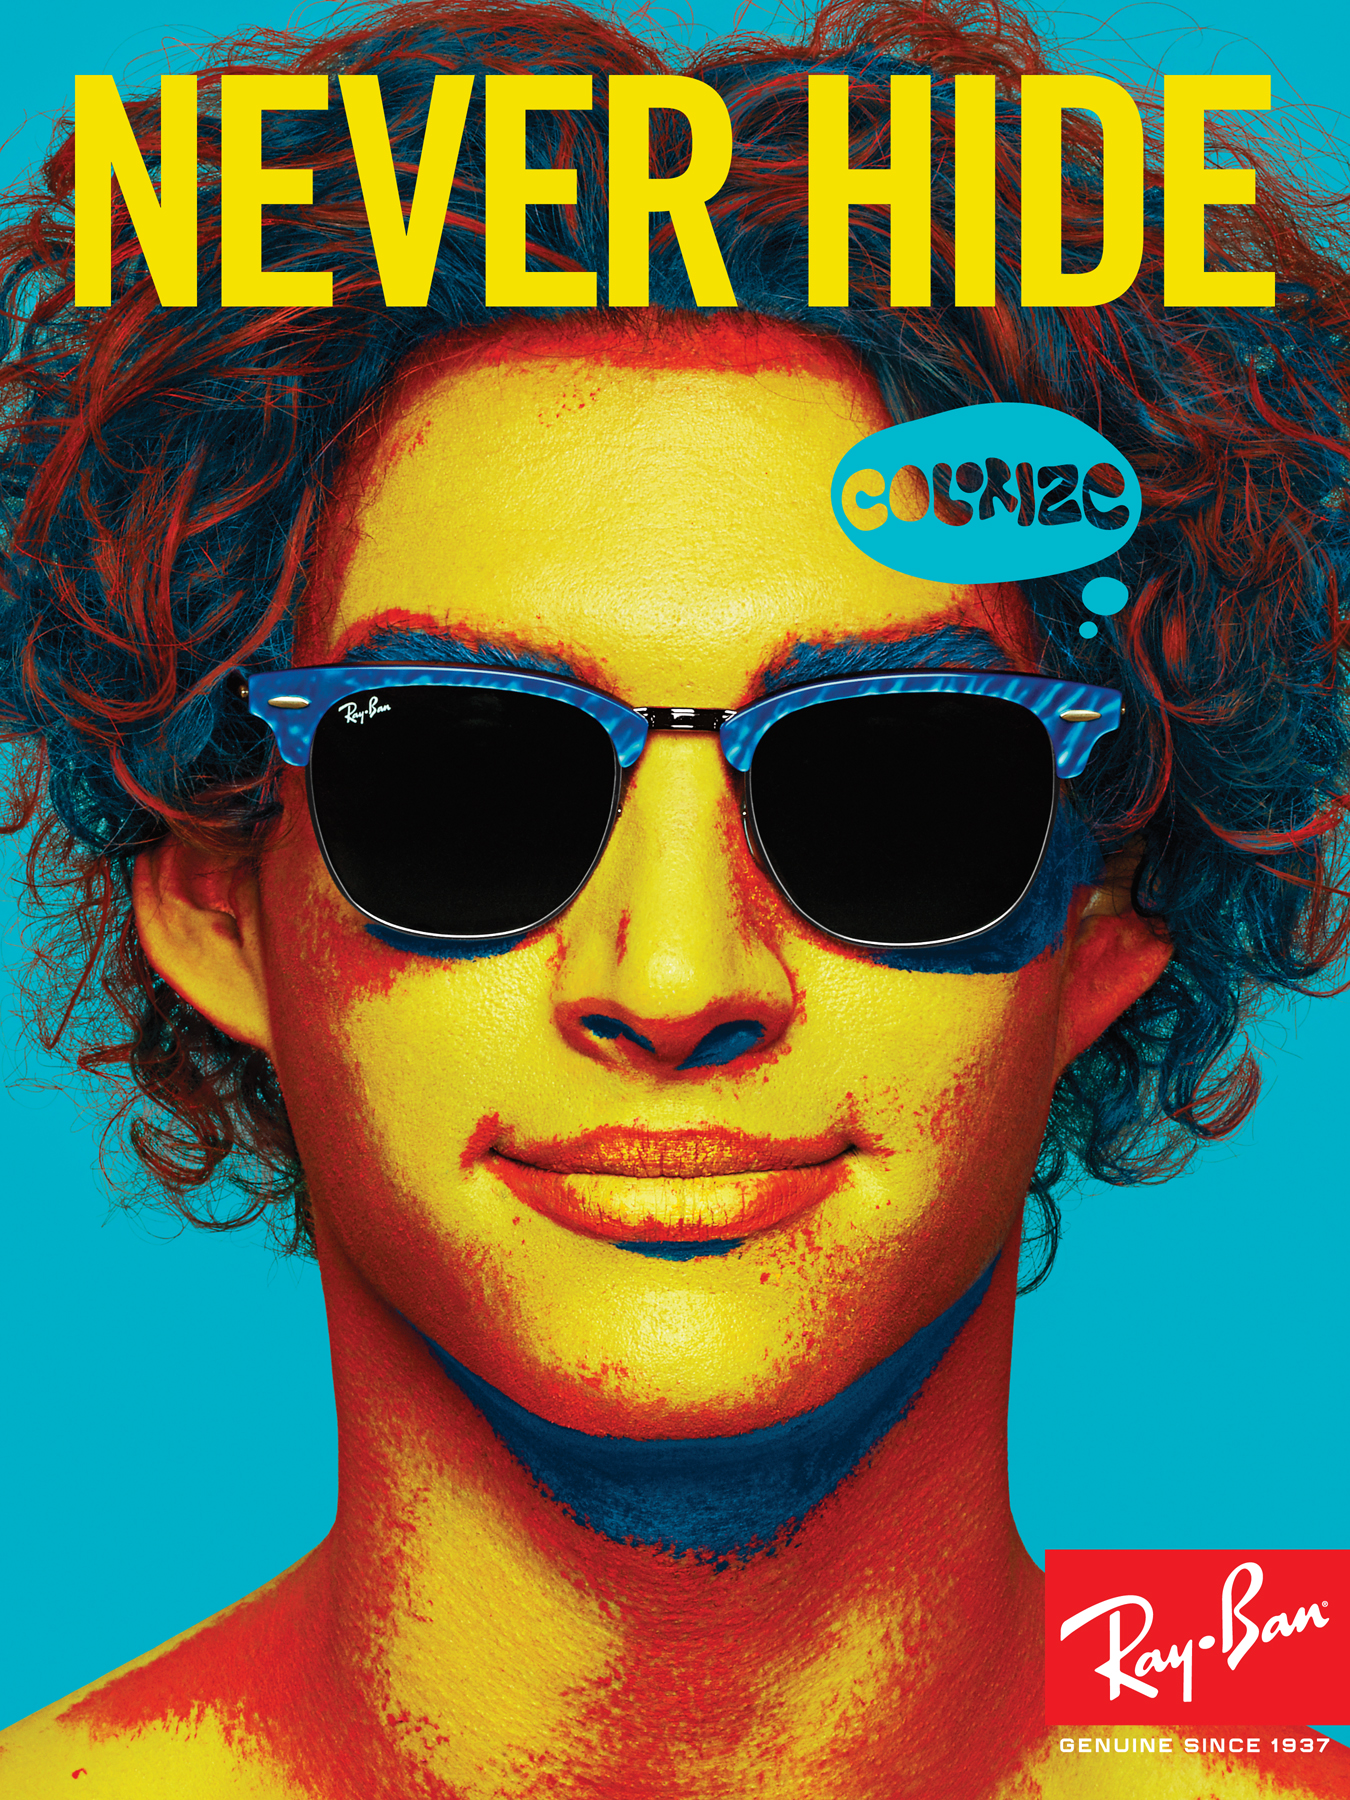 Ray-Ban-Never-Hide-Colorize